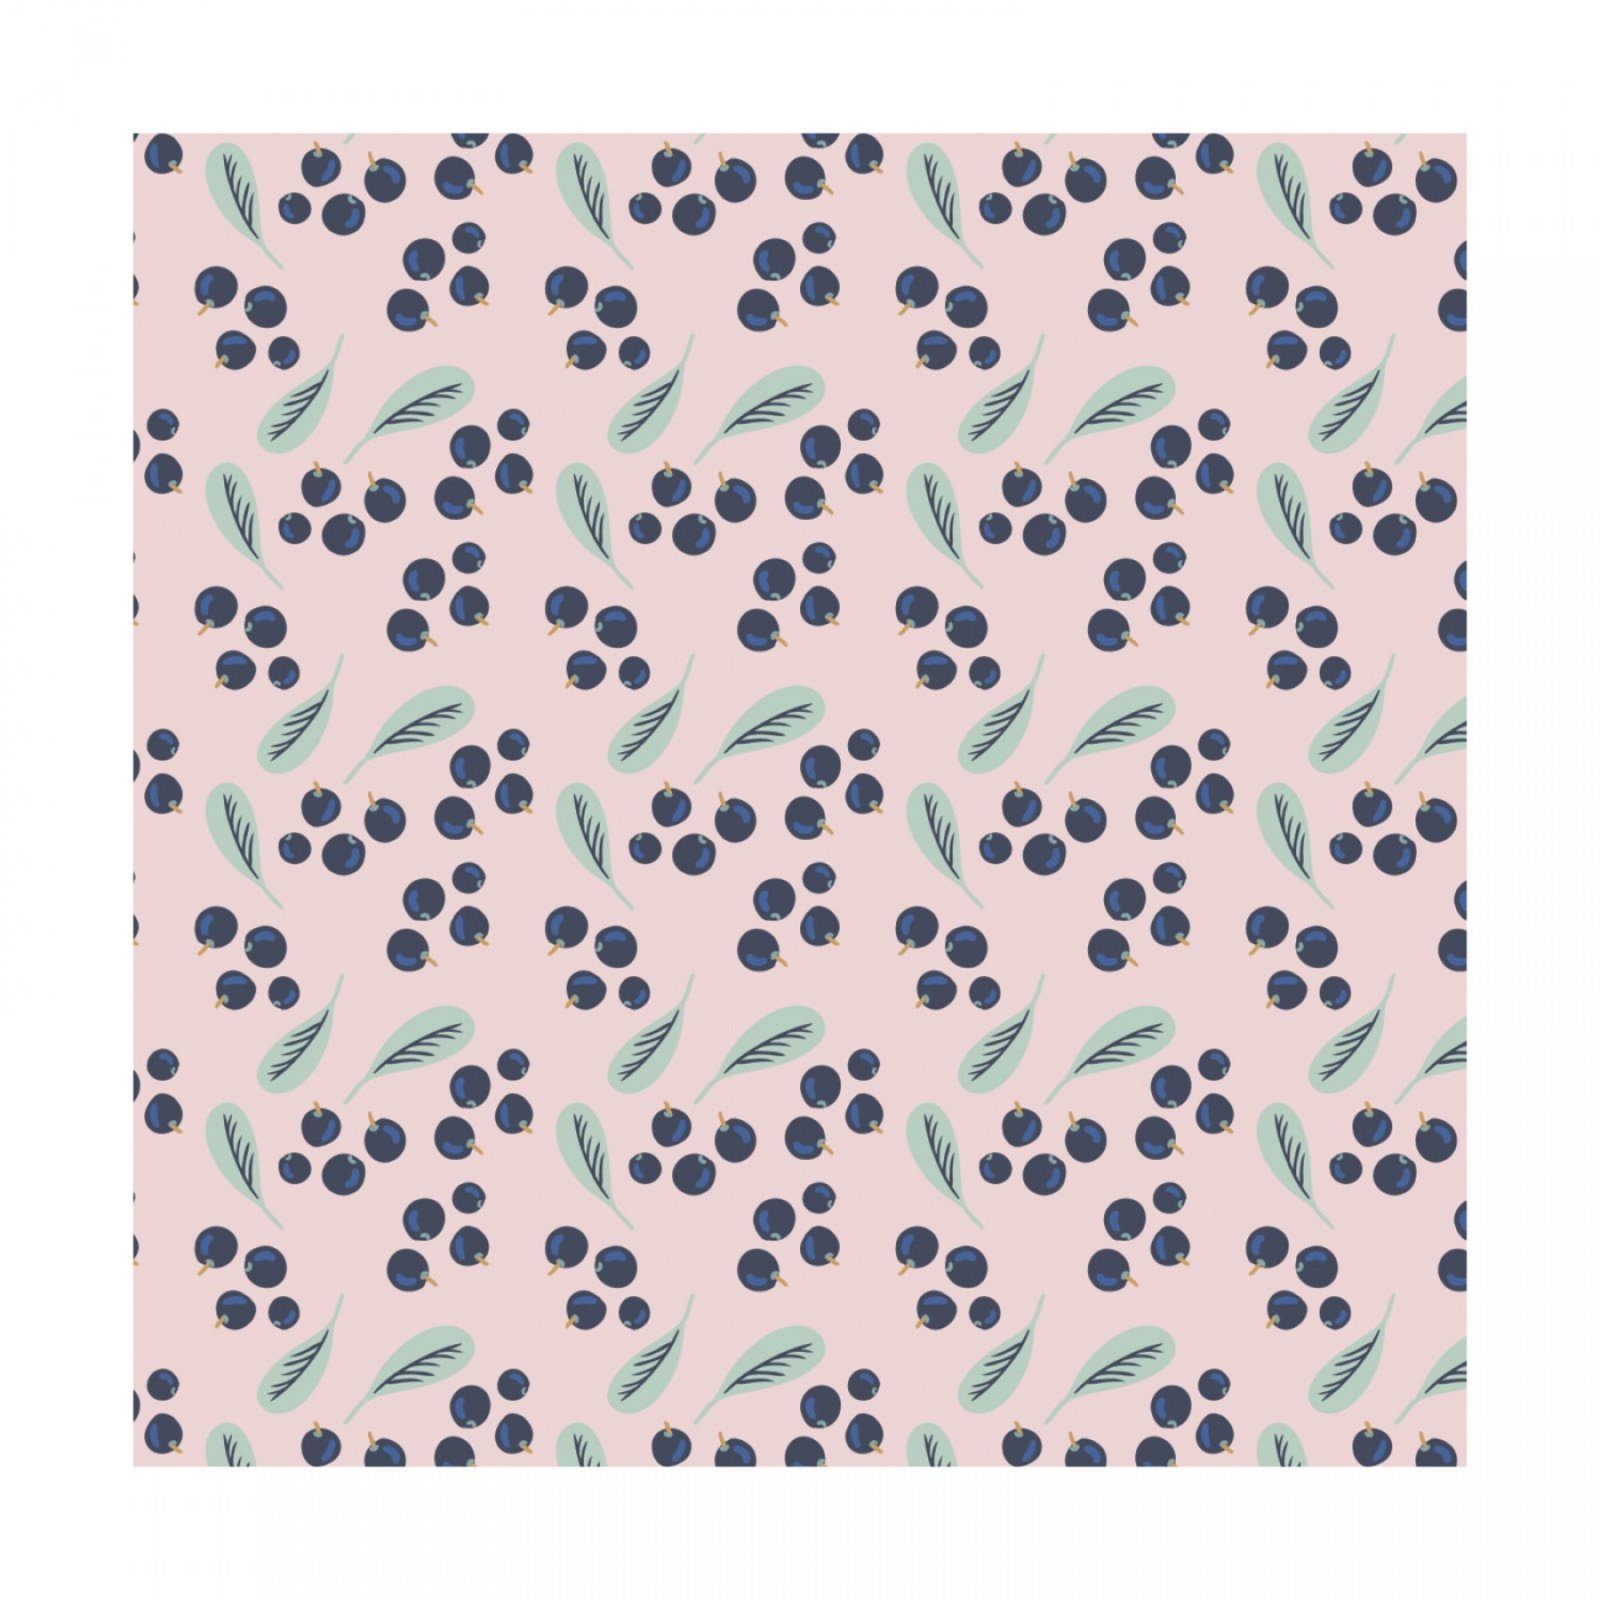 Berry Blossoms - Blueberries pink